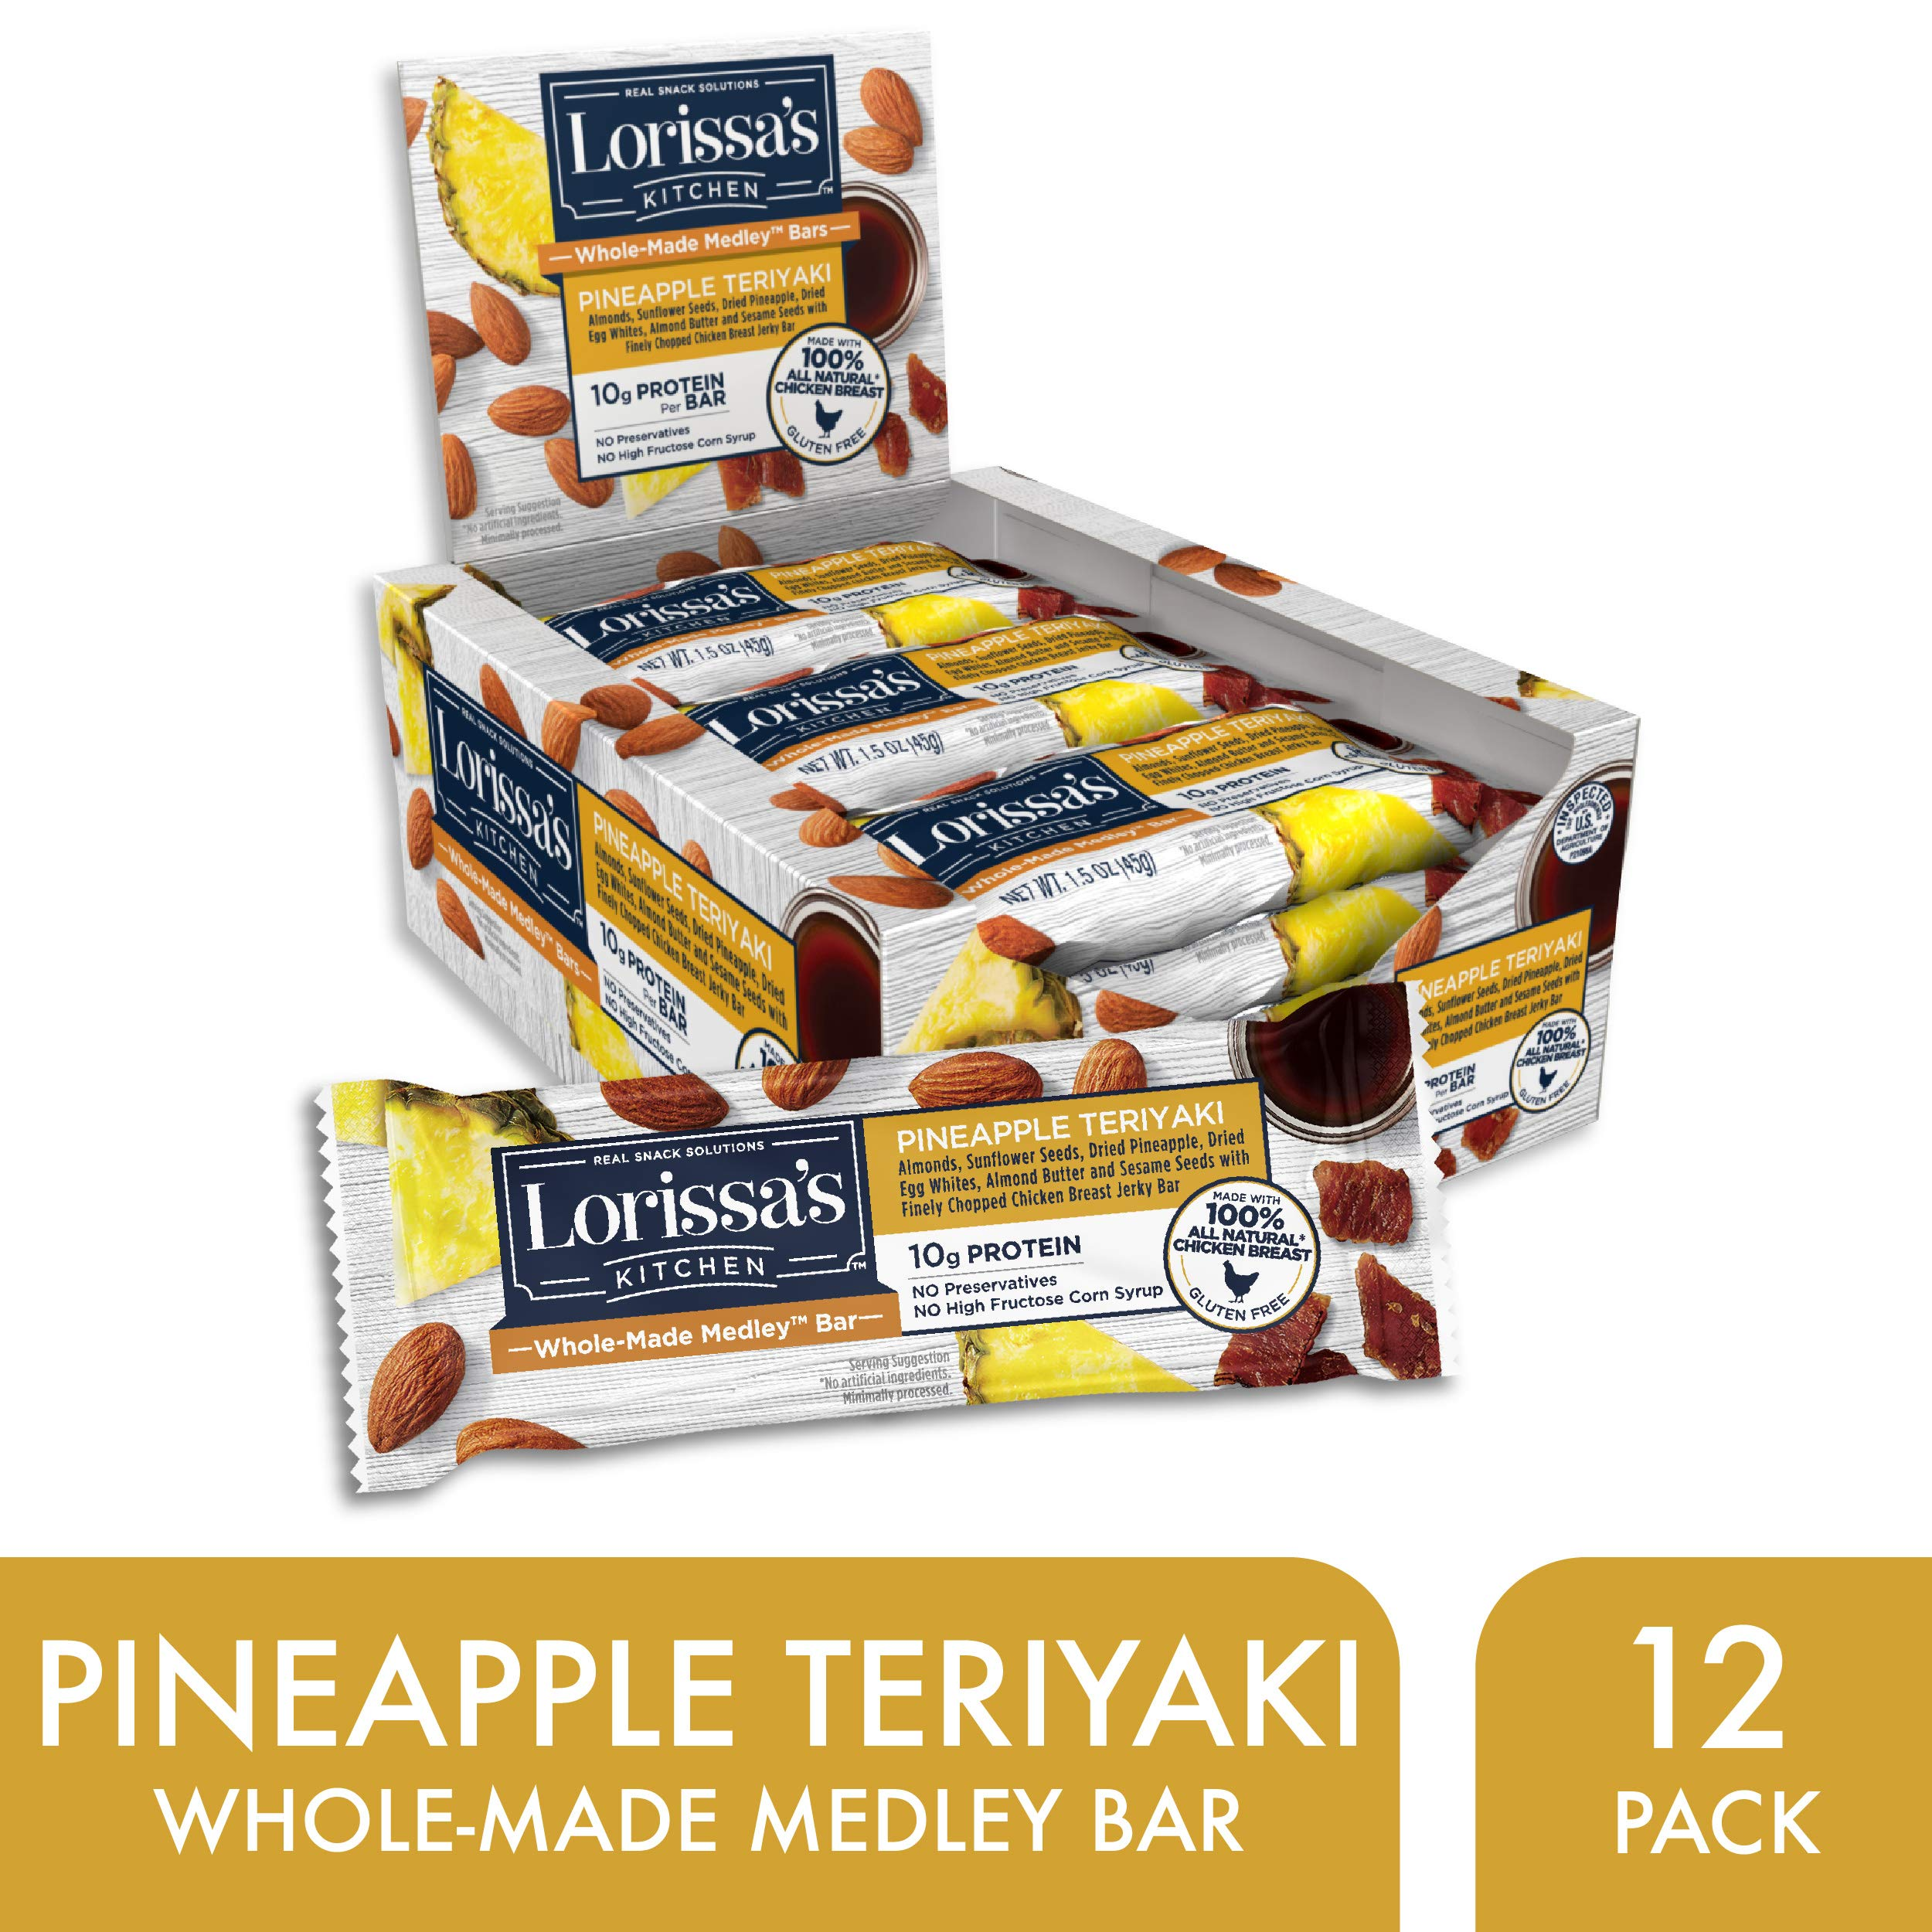 Lorissa's Kitchen  Whole-Made Medley Bars, Pineapple Teriyaki, 1.5 oz Bars, Pack of 12 – 10g of Protein, Gluten-Free - Individual Protein Bars Made with Simple Ingredients